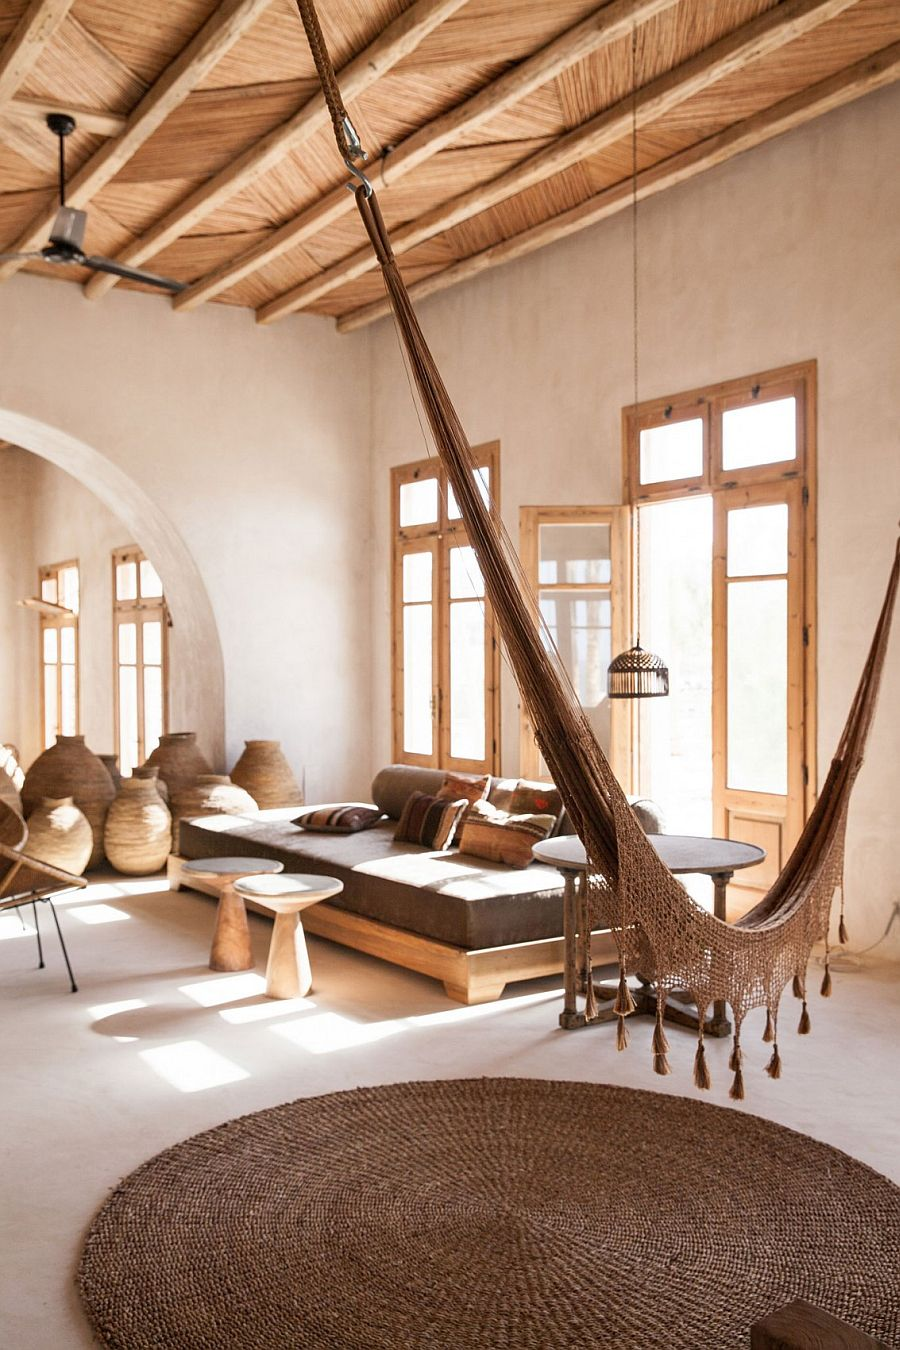 Hammock for the tranquil stone house